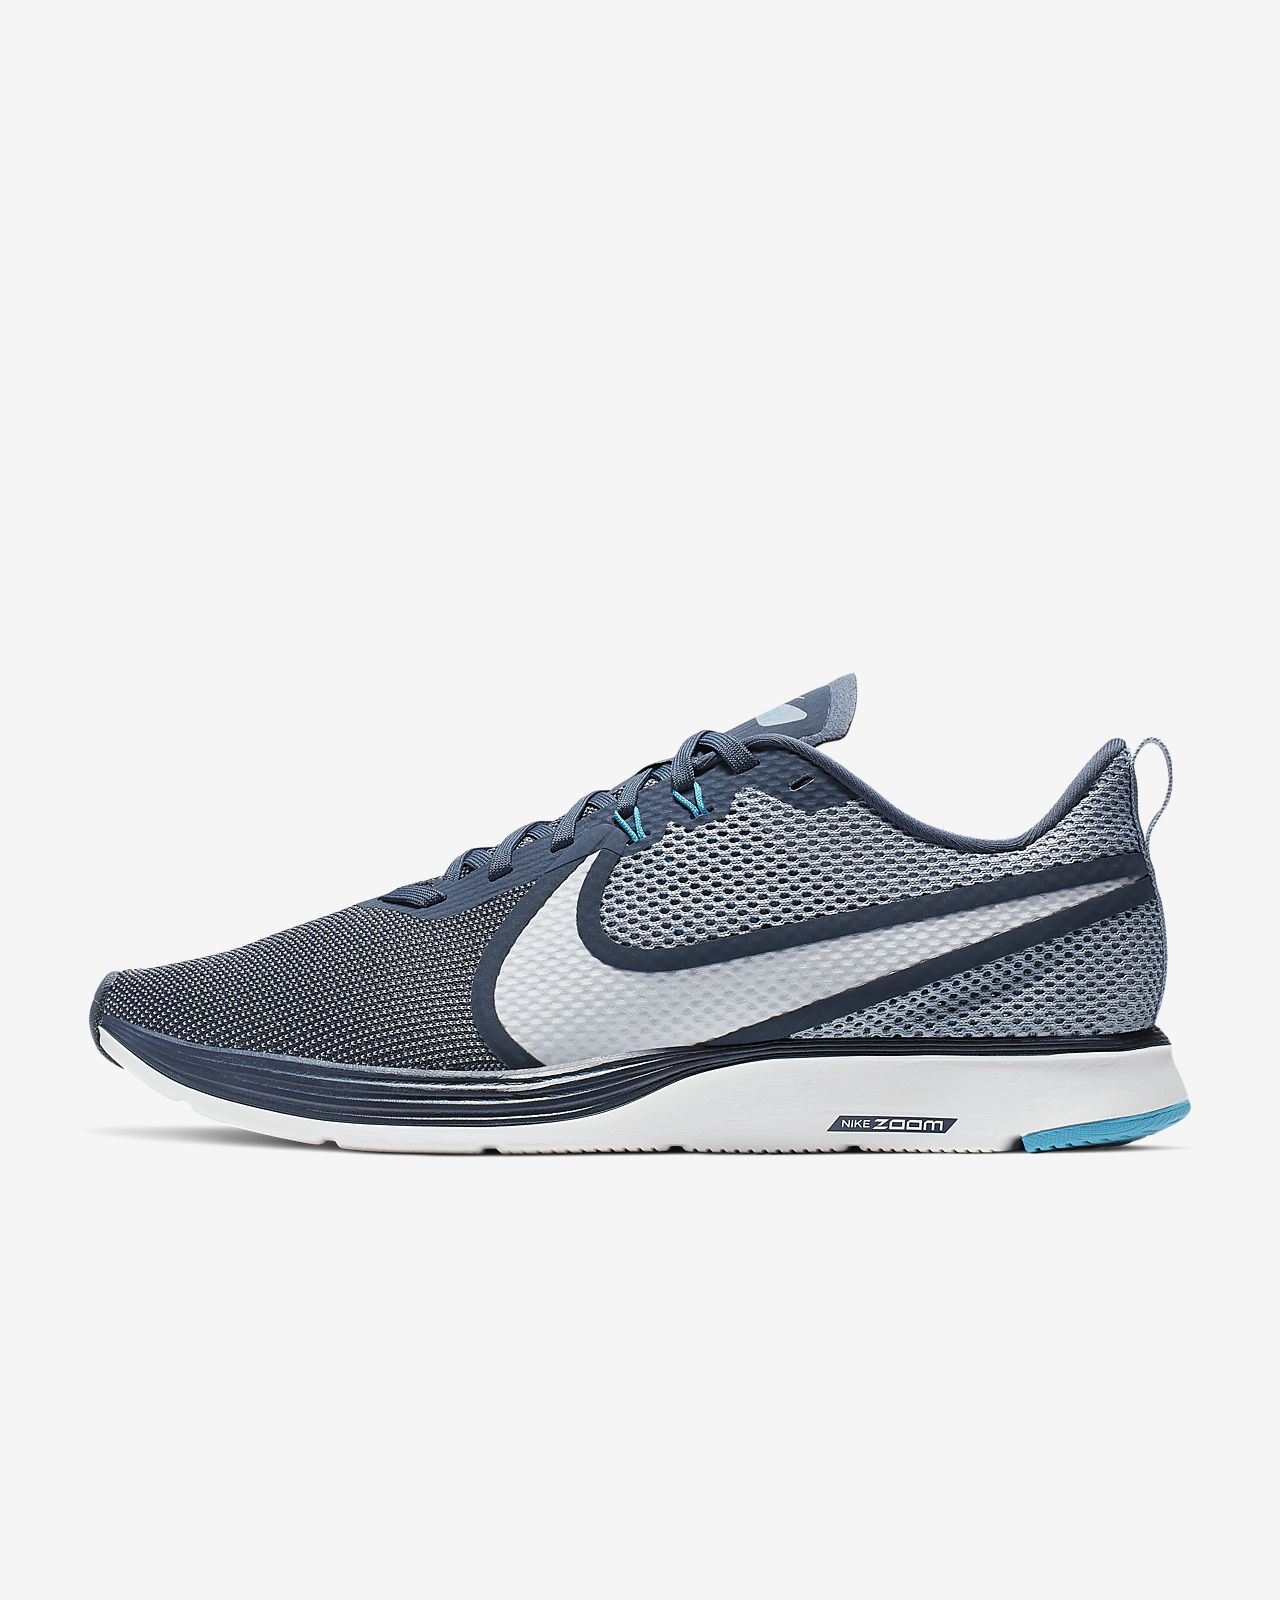 first rate a0e55 7dd0e ... Chaussure de running Nike Zoom Strike 2 pour Homme